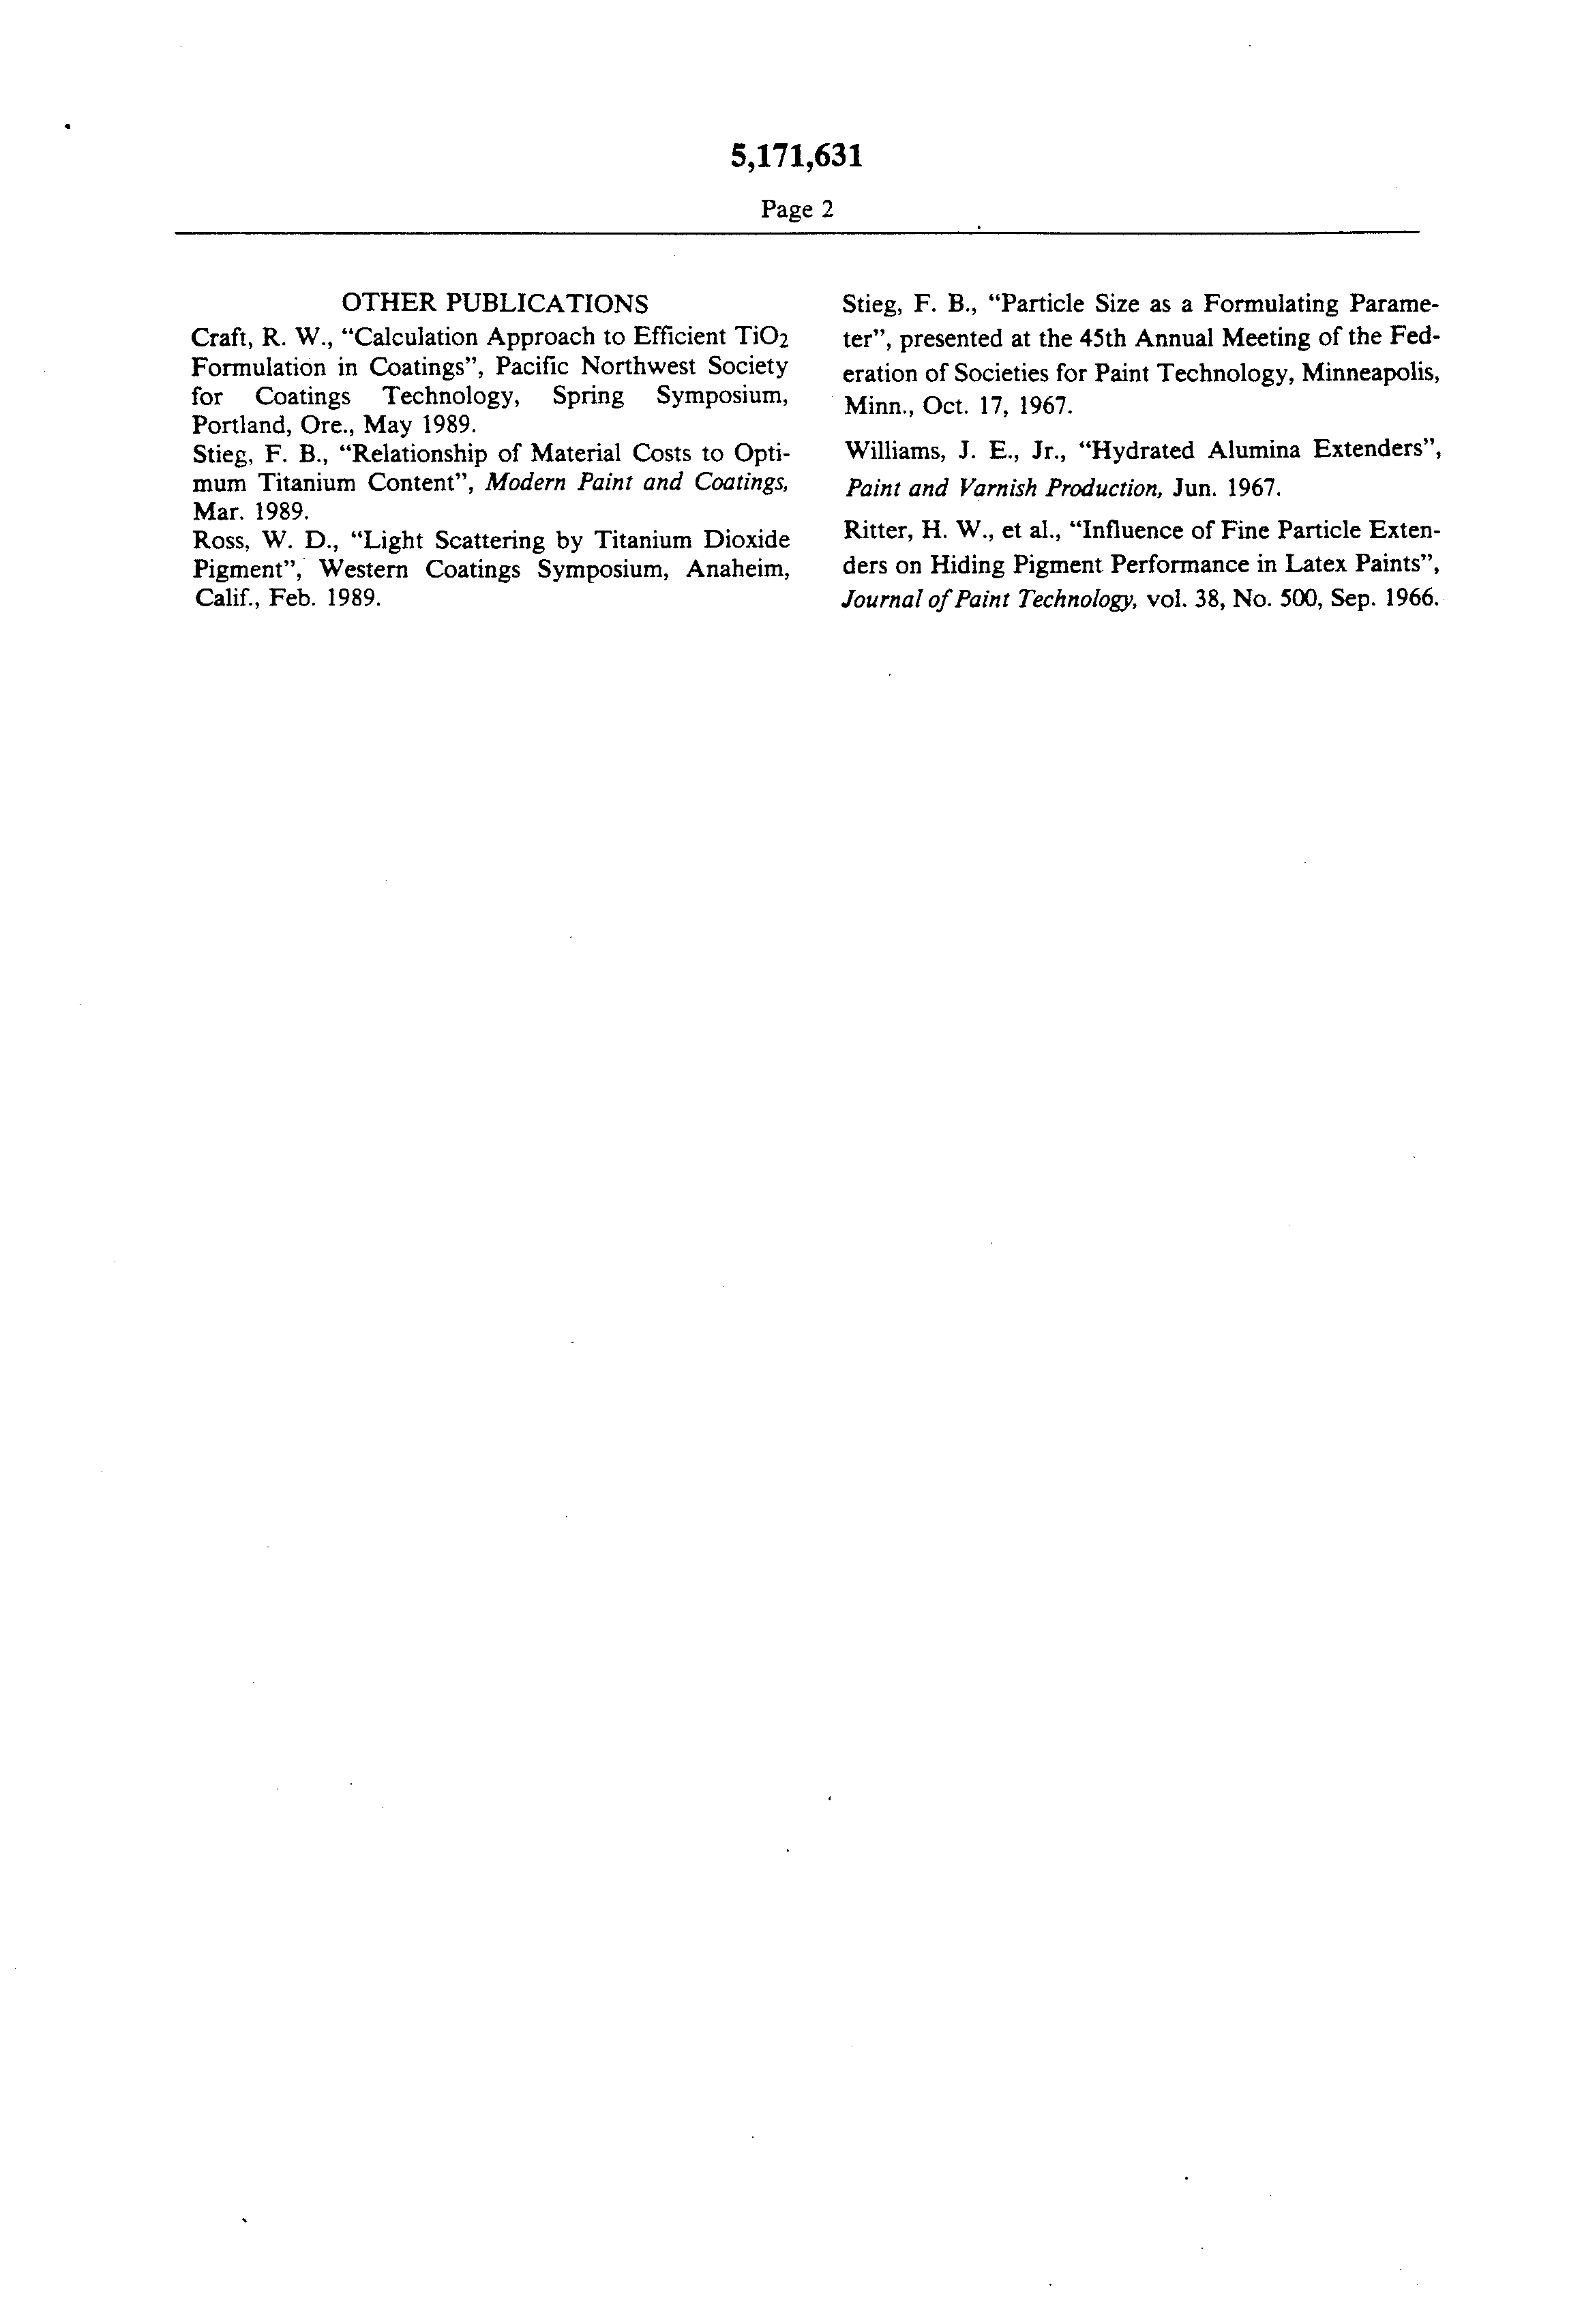 US 5171631 A - Spacer/extender For Titanium Dioxide In